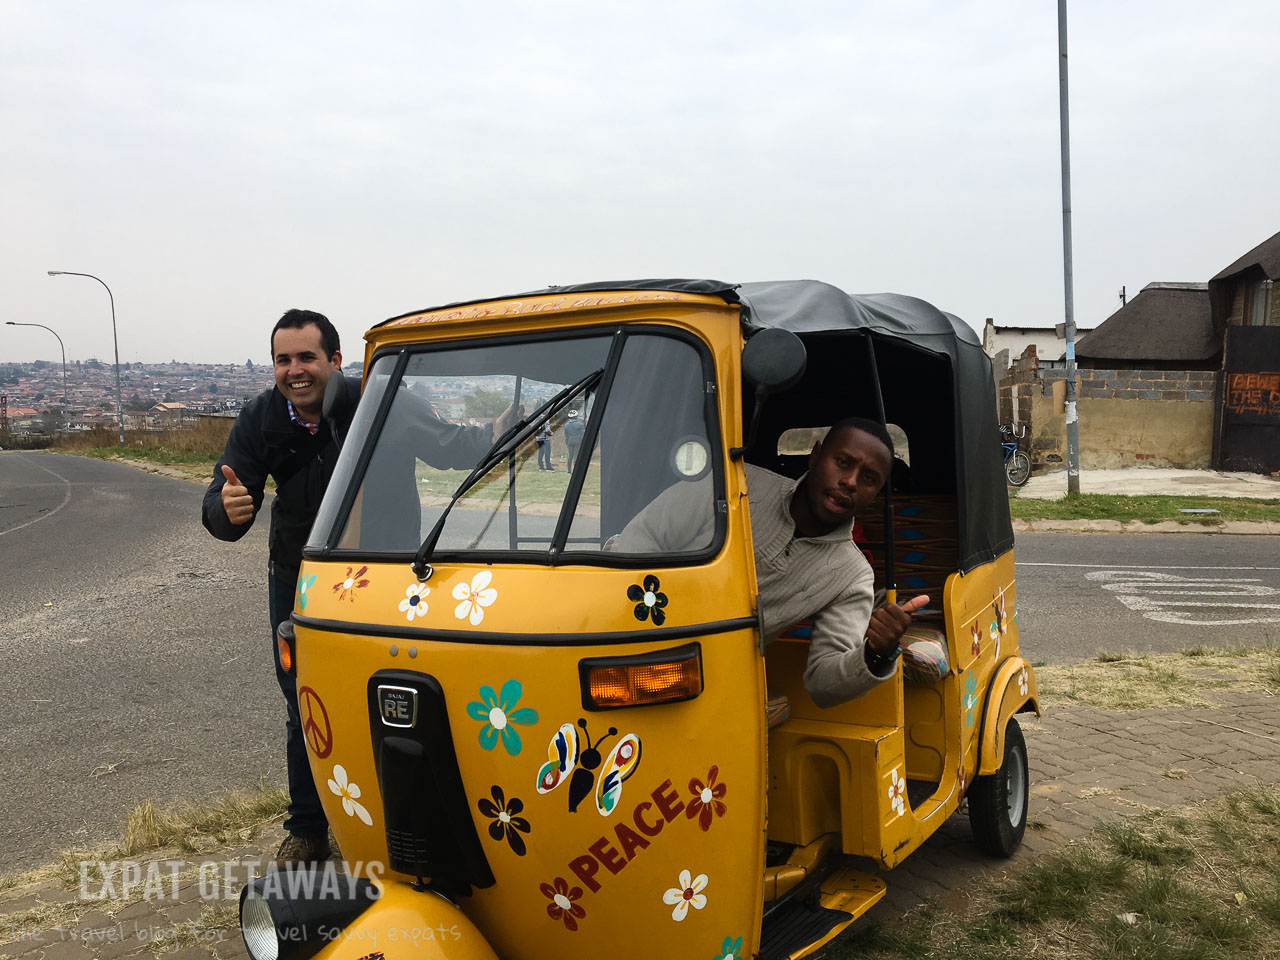 It was great fun zipping around the sights of Soweto on a colourful tuk tuk with our local guide. Expat Getaways Two Weeks in Southern Africa.